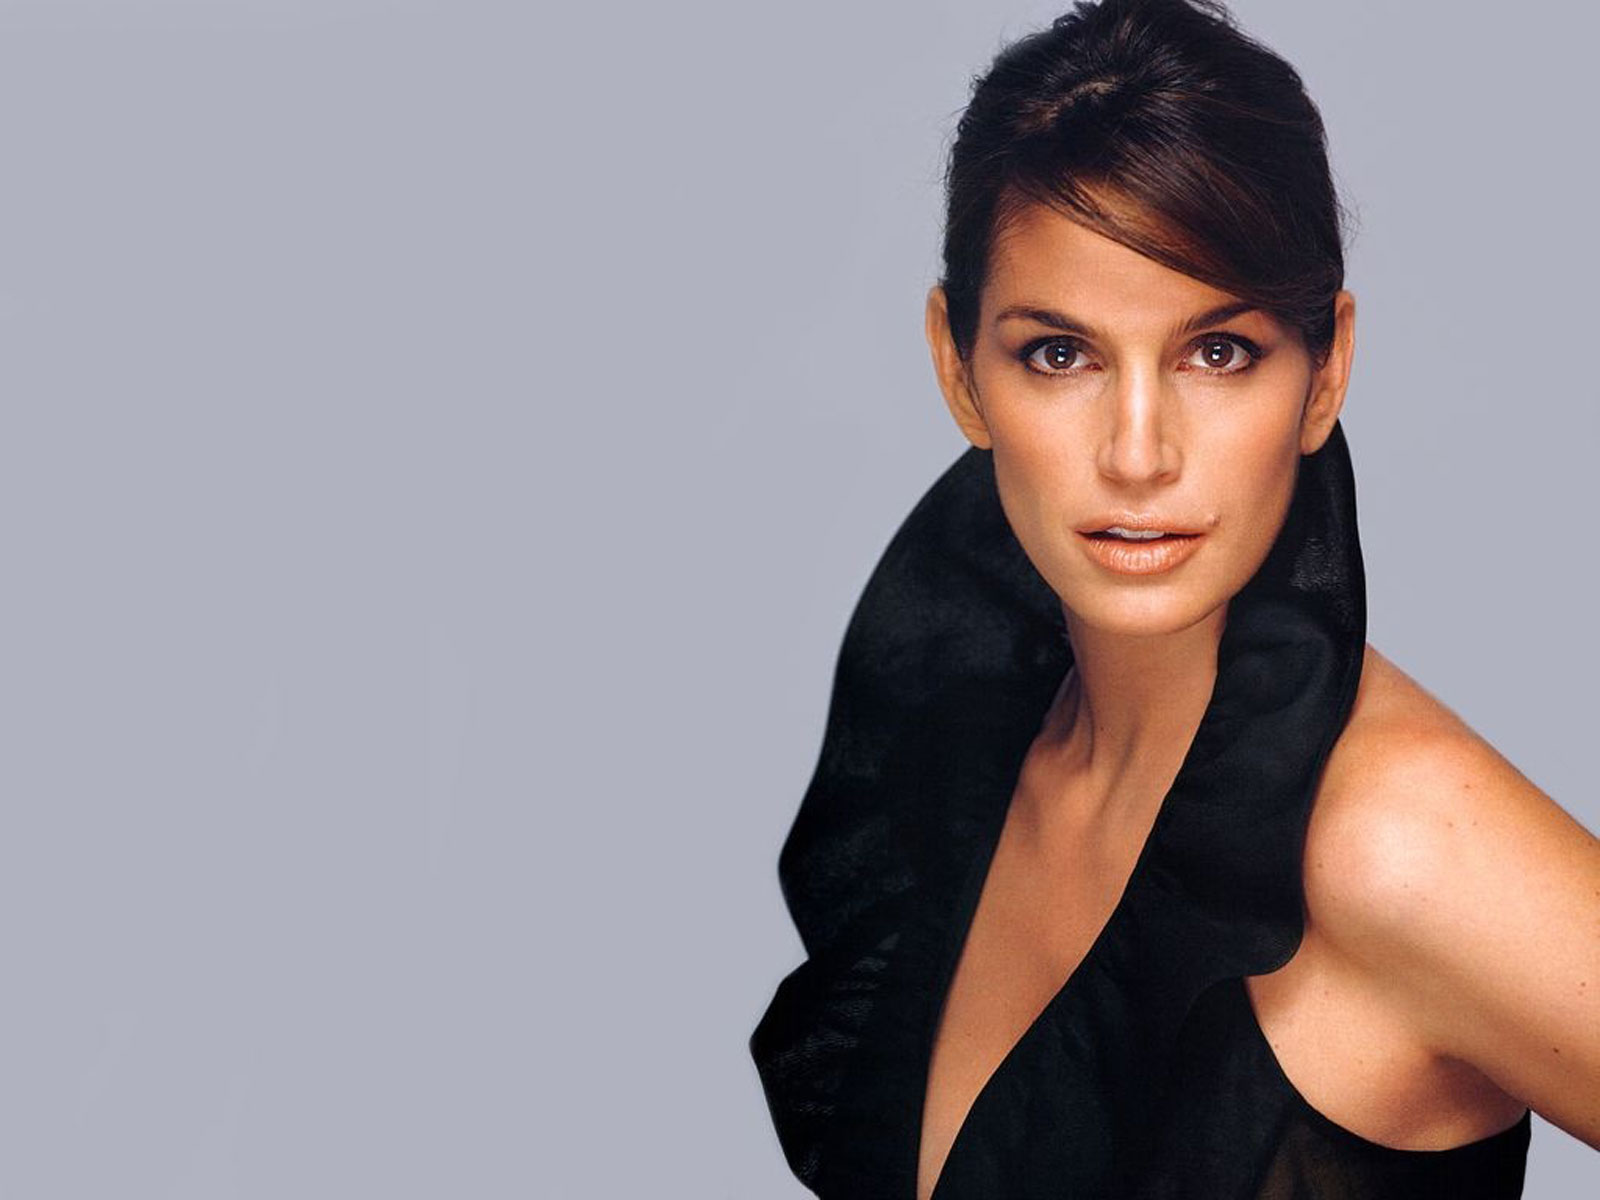 Sexy Cindy Crawford Beautiful Hd Wallpapers - All Hd -1945